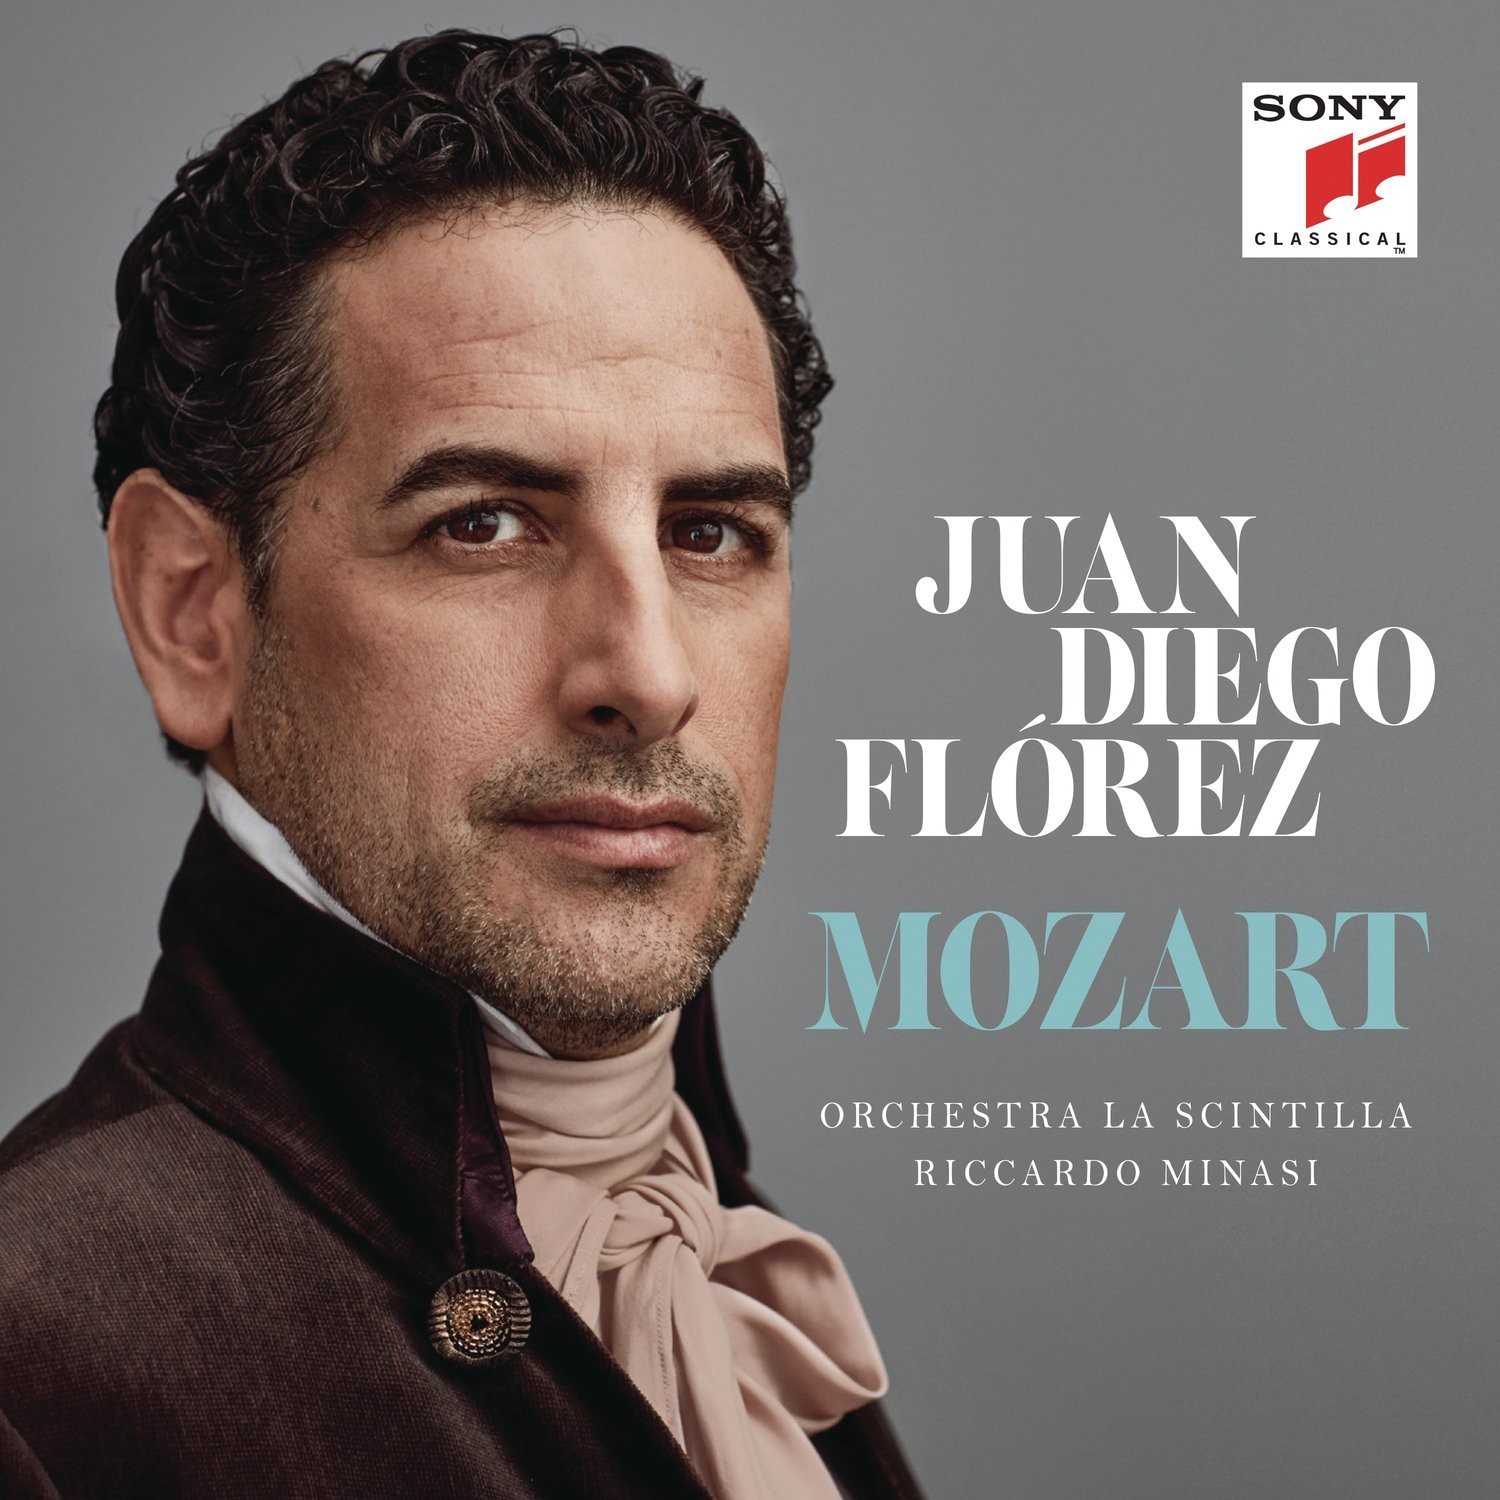 Mozart: Juan Diego Flórez with the Orchestra La Sc